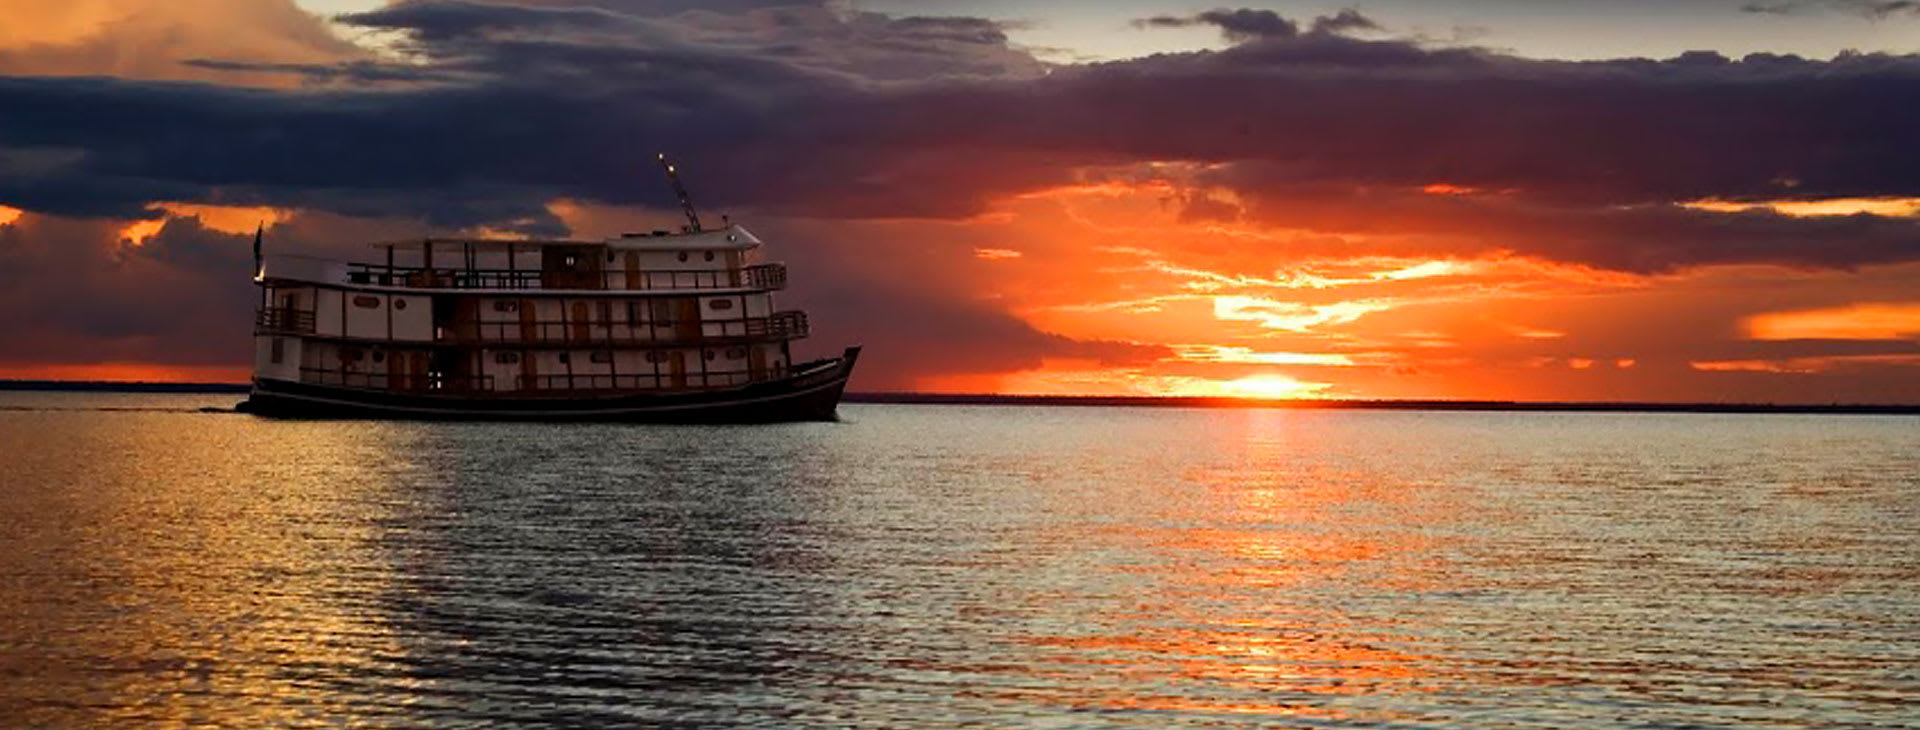 Amazon Dream in the sunset